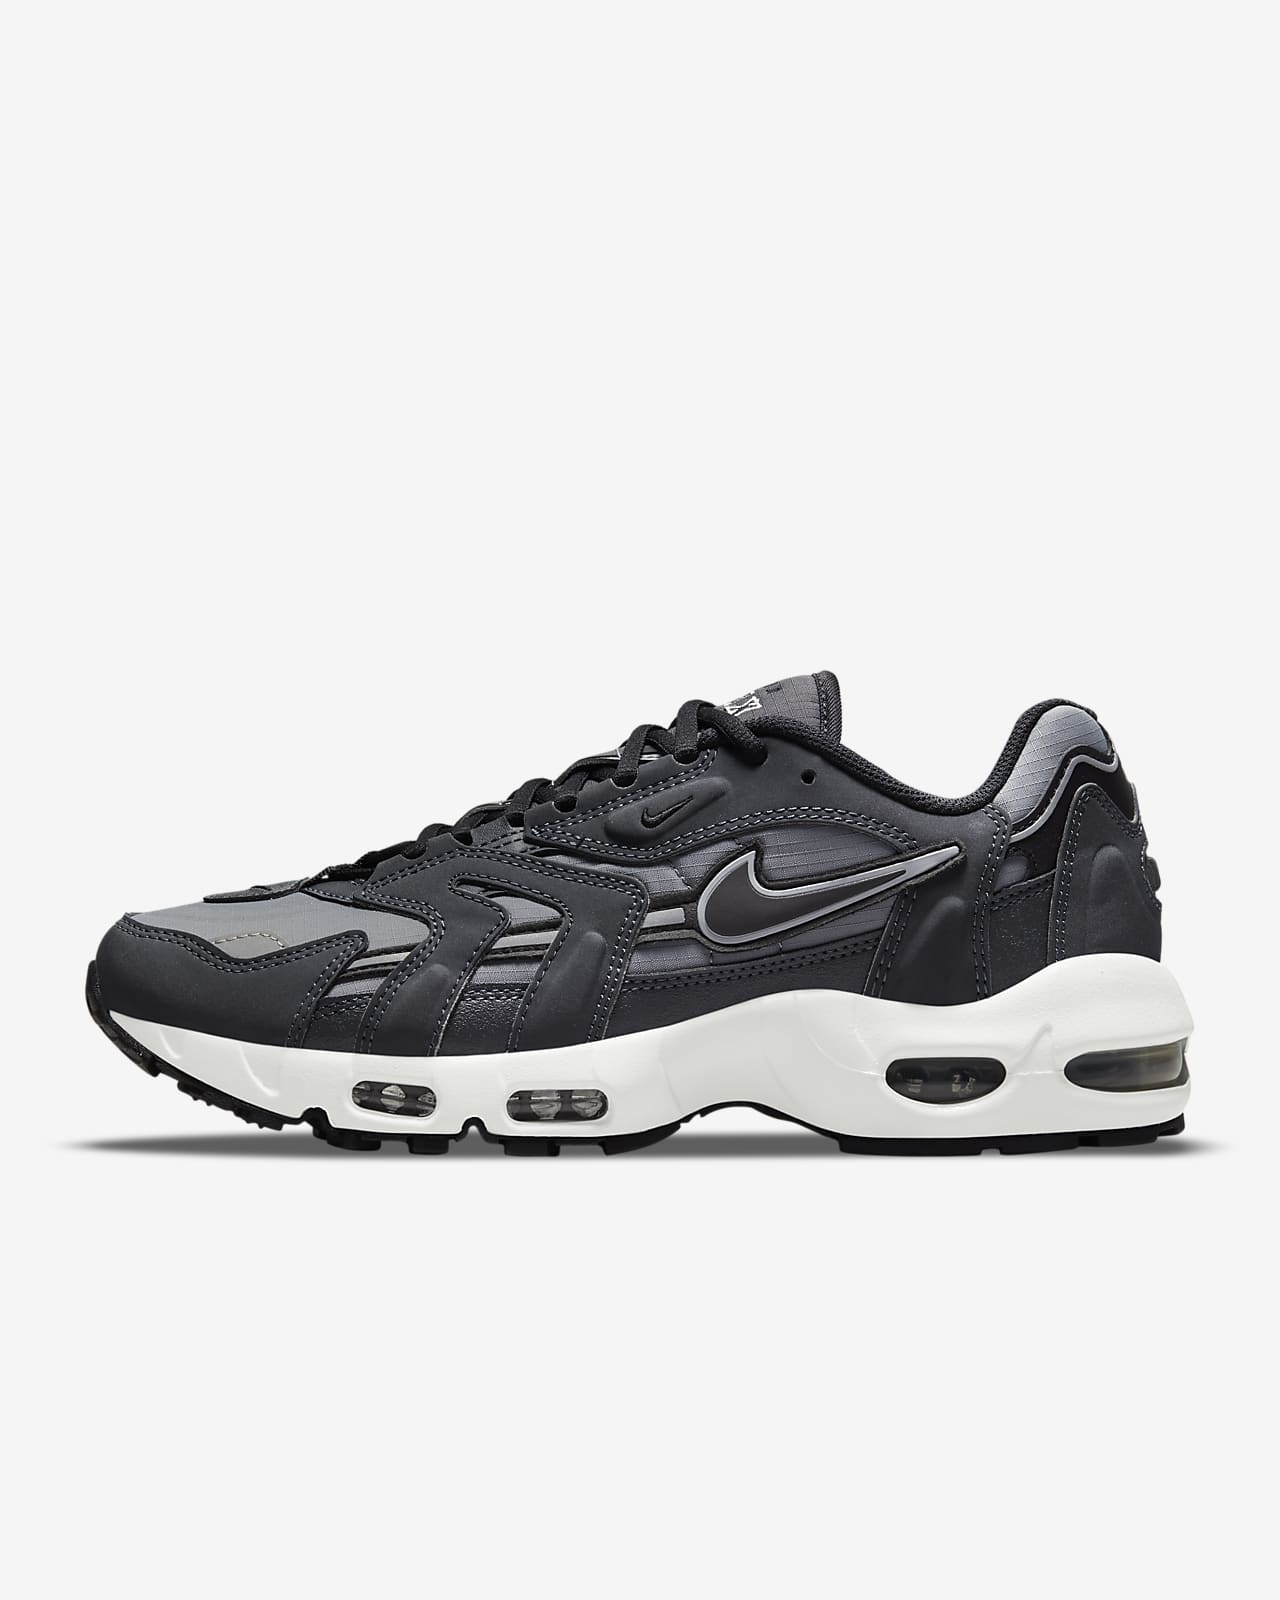 Chaussures Nike Air Max 96 II pour Homme